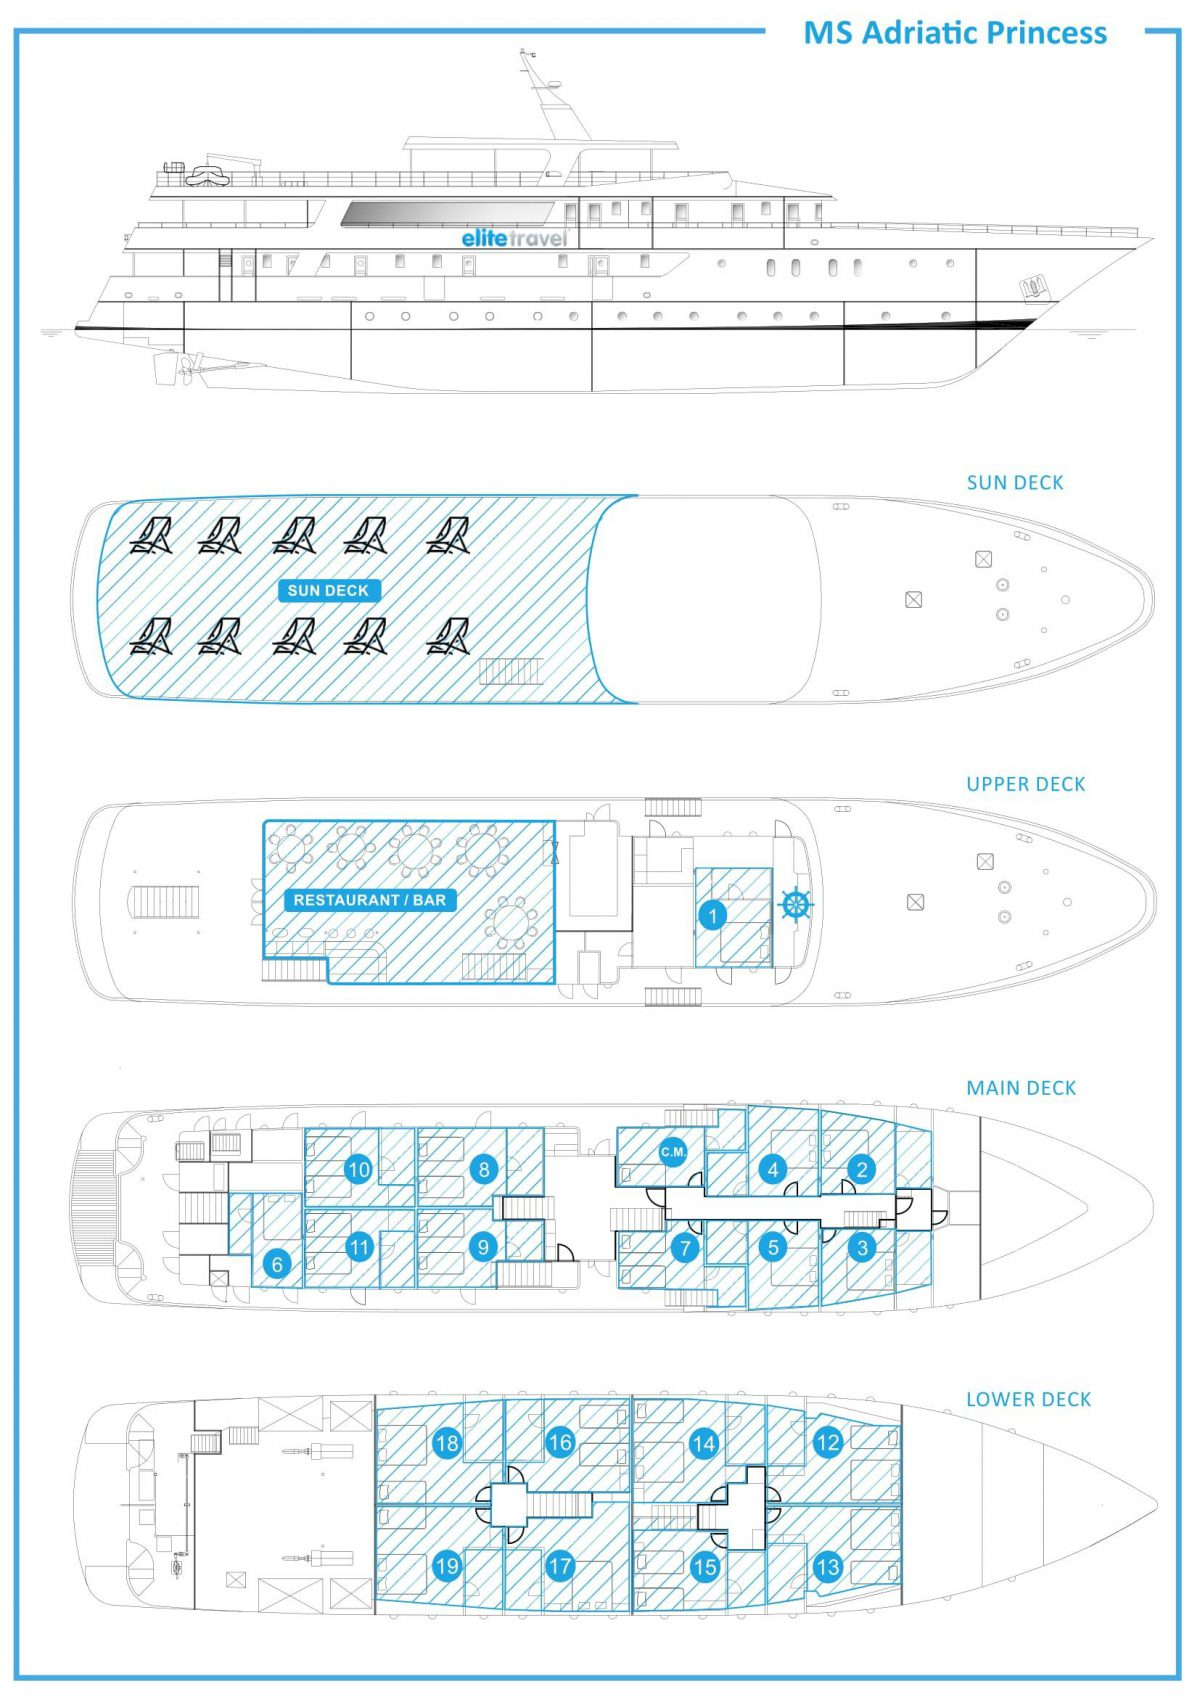 Adriatic Princess Deck Plan